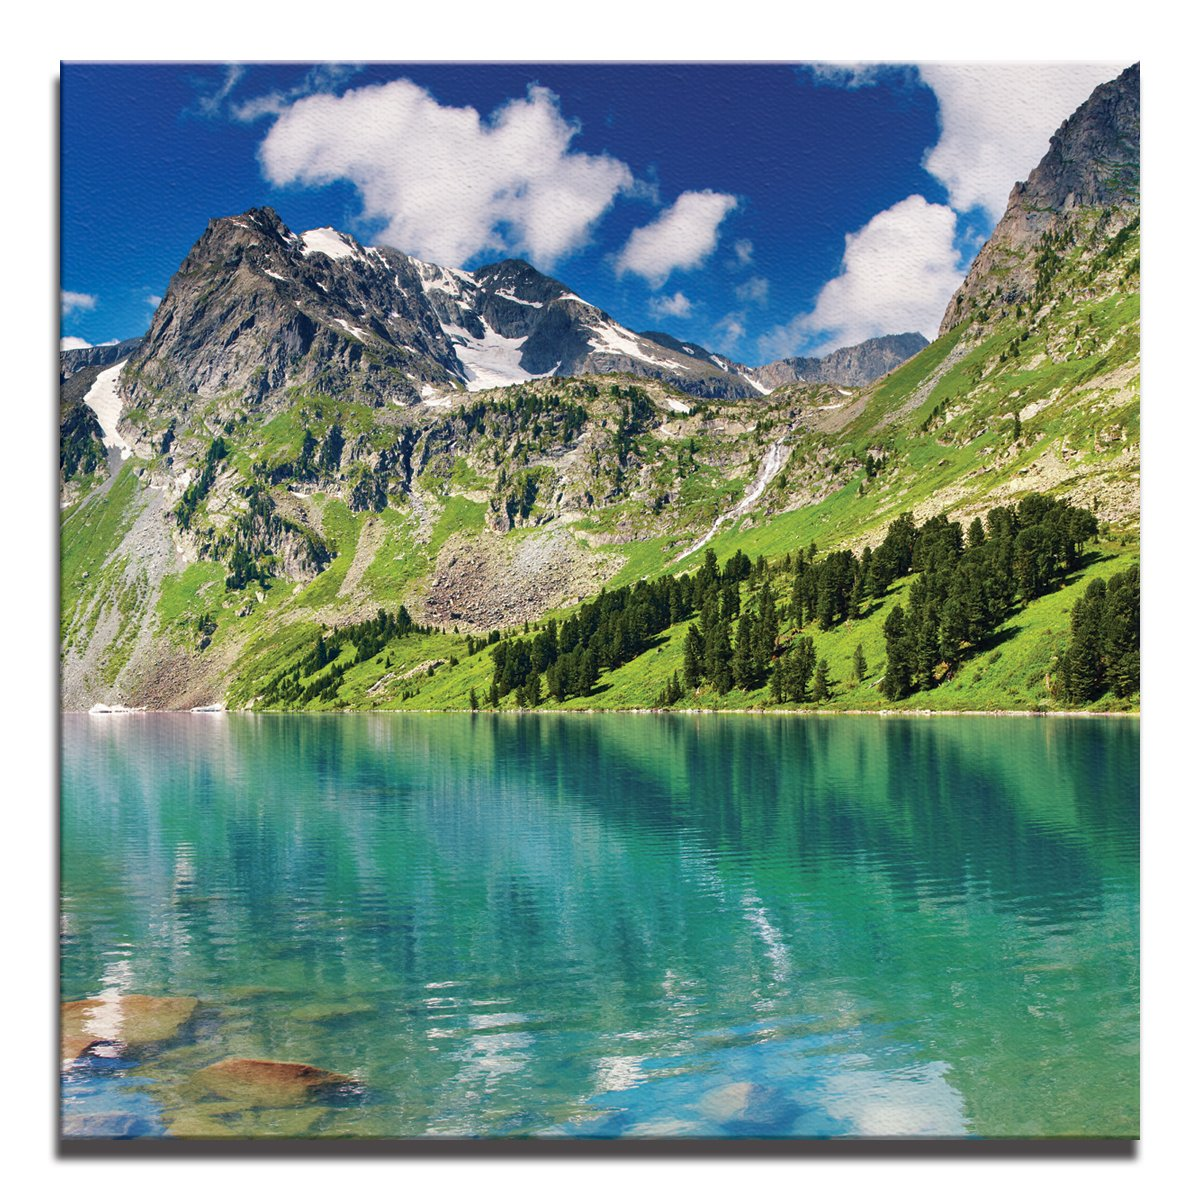 JP London Ready to Hang Made in North America Gallery Wrap Heavyweight Canvas Wall Art Banff Glacier Mountain Pond 14in SQSCNV2082